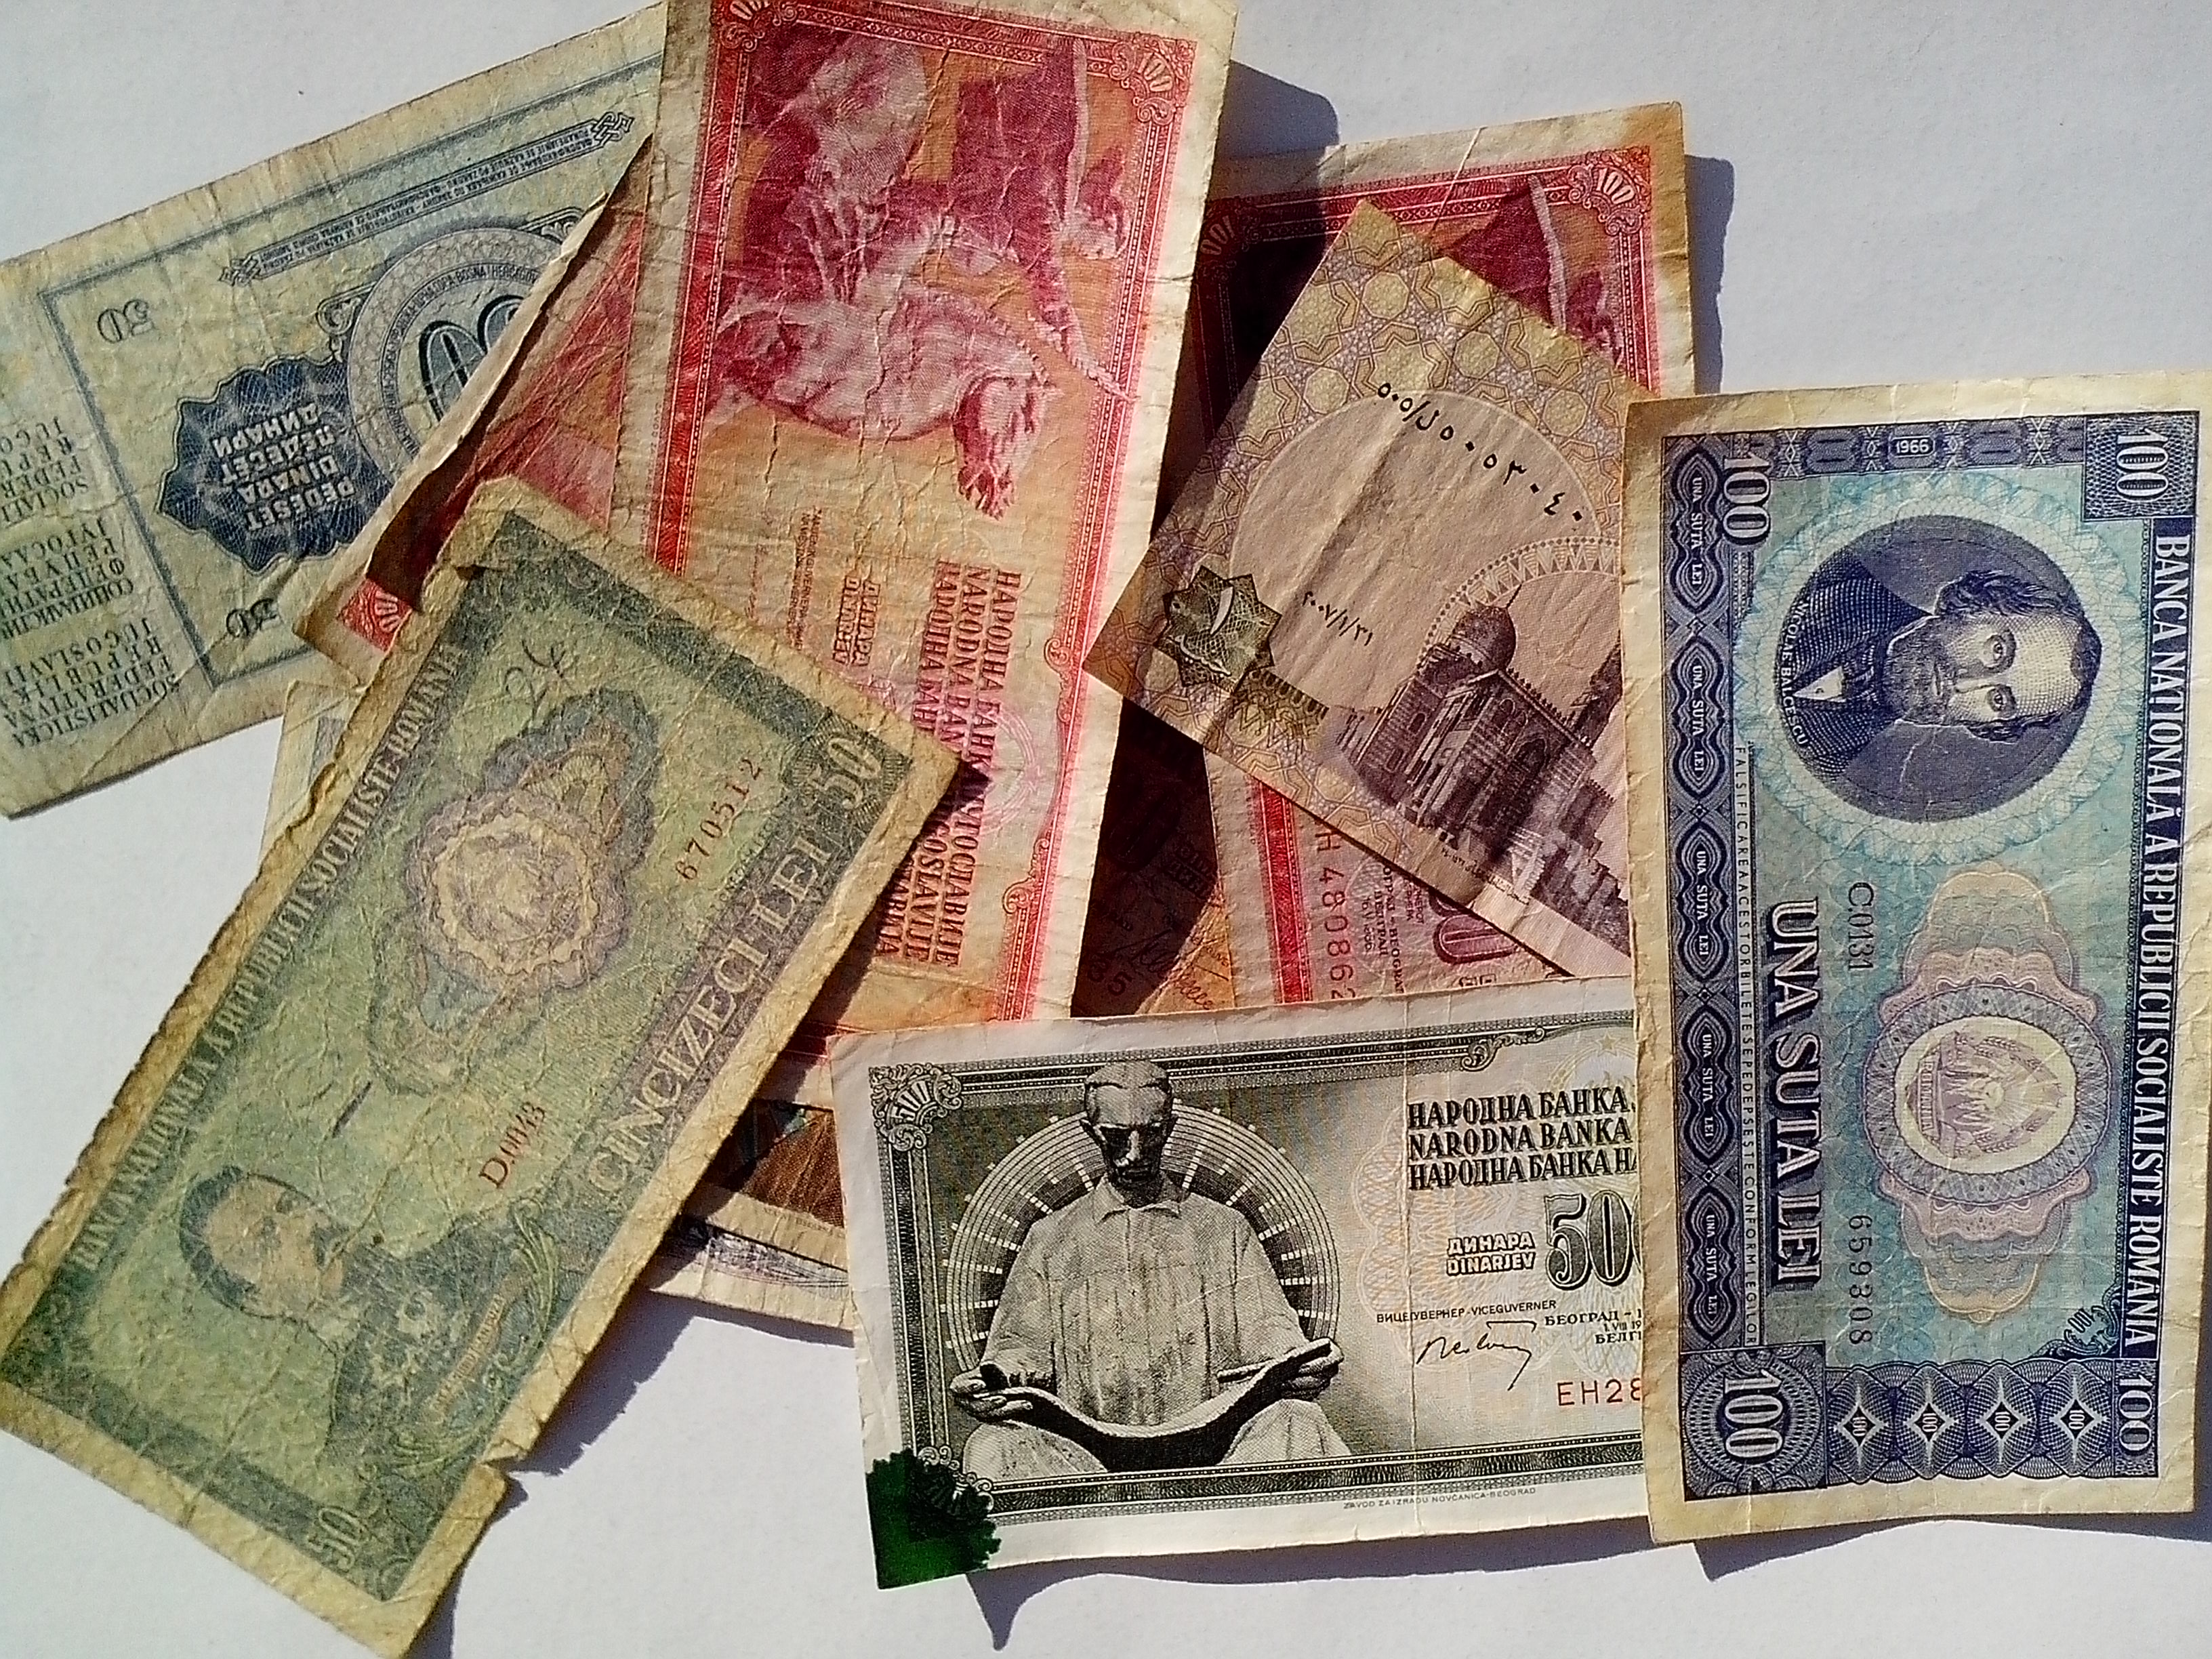 Free photograph; vintage, money, bills, banknotes, Europe, cash, currency